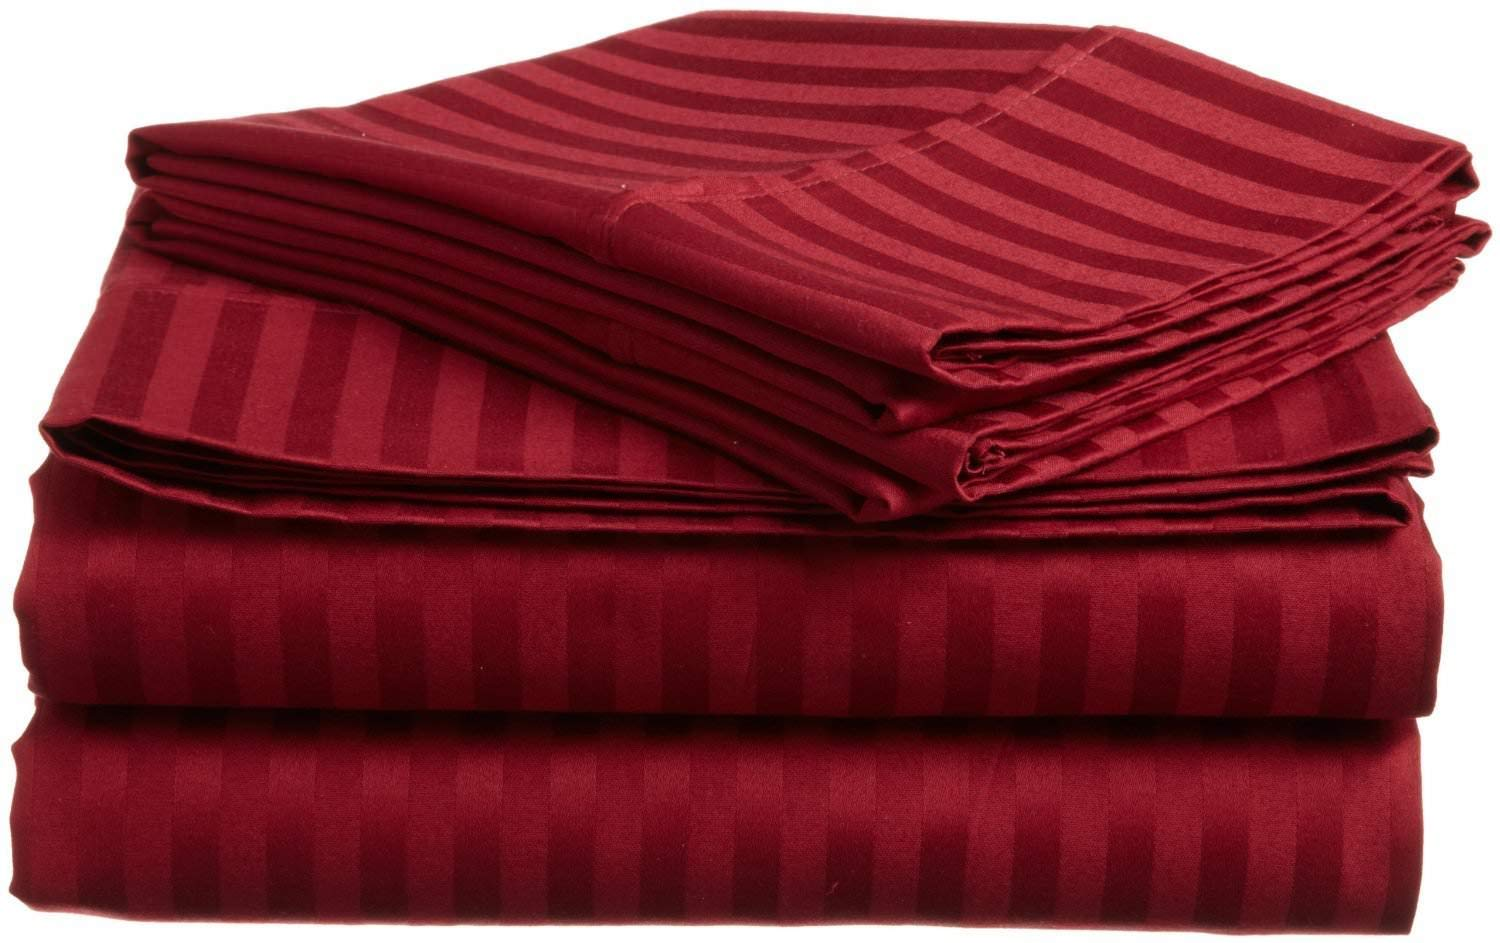 Bed Sheet Set 4 Piece - 100% Pure Cotton 400 Thread Count - Fits mattresses up to 16 Inch Deep Pocket - Wrinkle, Fade, Stain Resistant - Hypoallergenic - California King, Burgundy Stripe